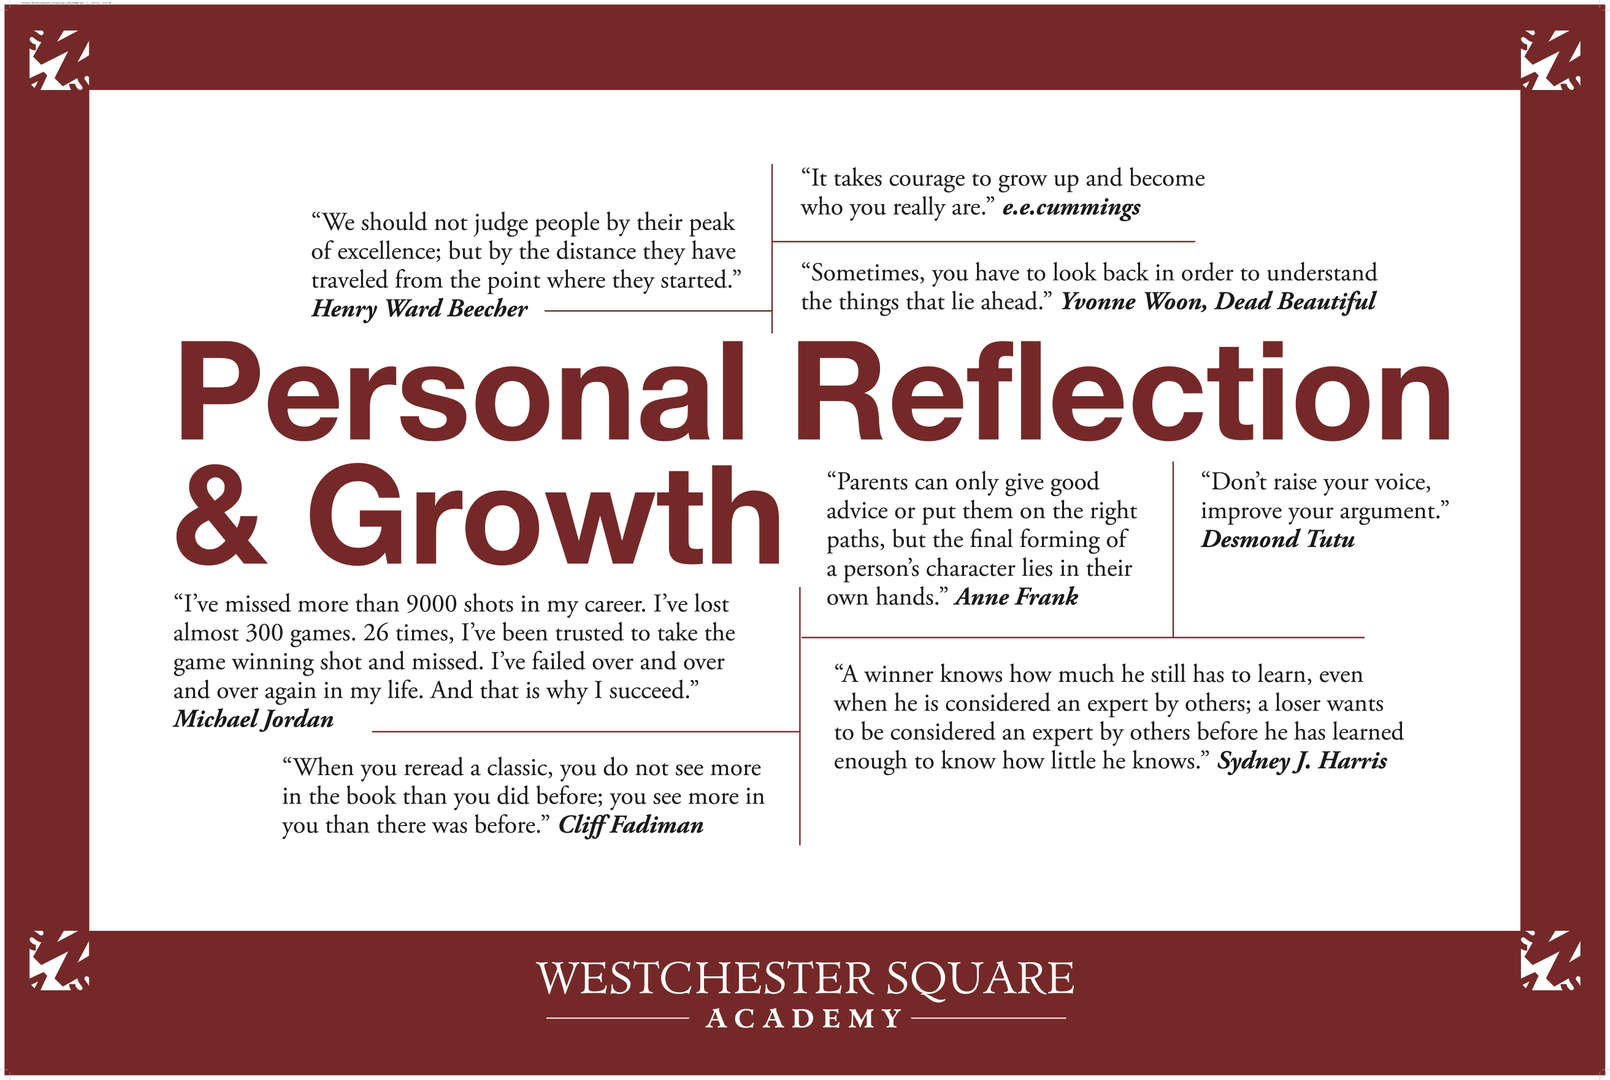 Personal Reflection and Growth Core Value